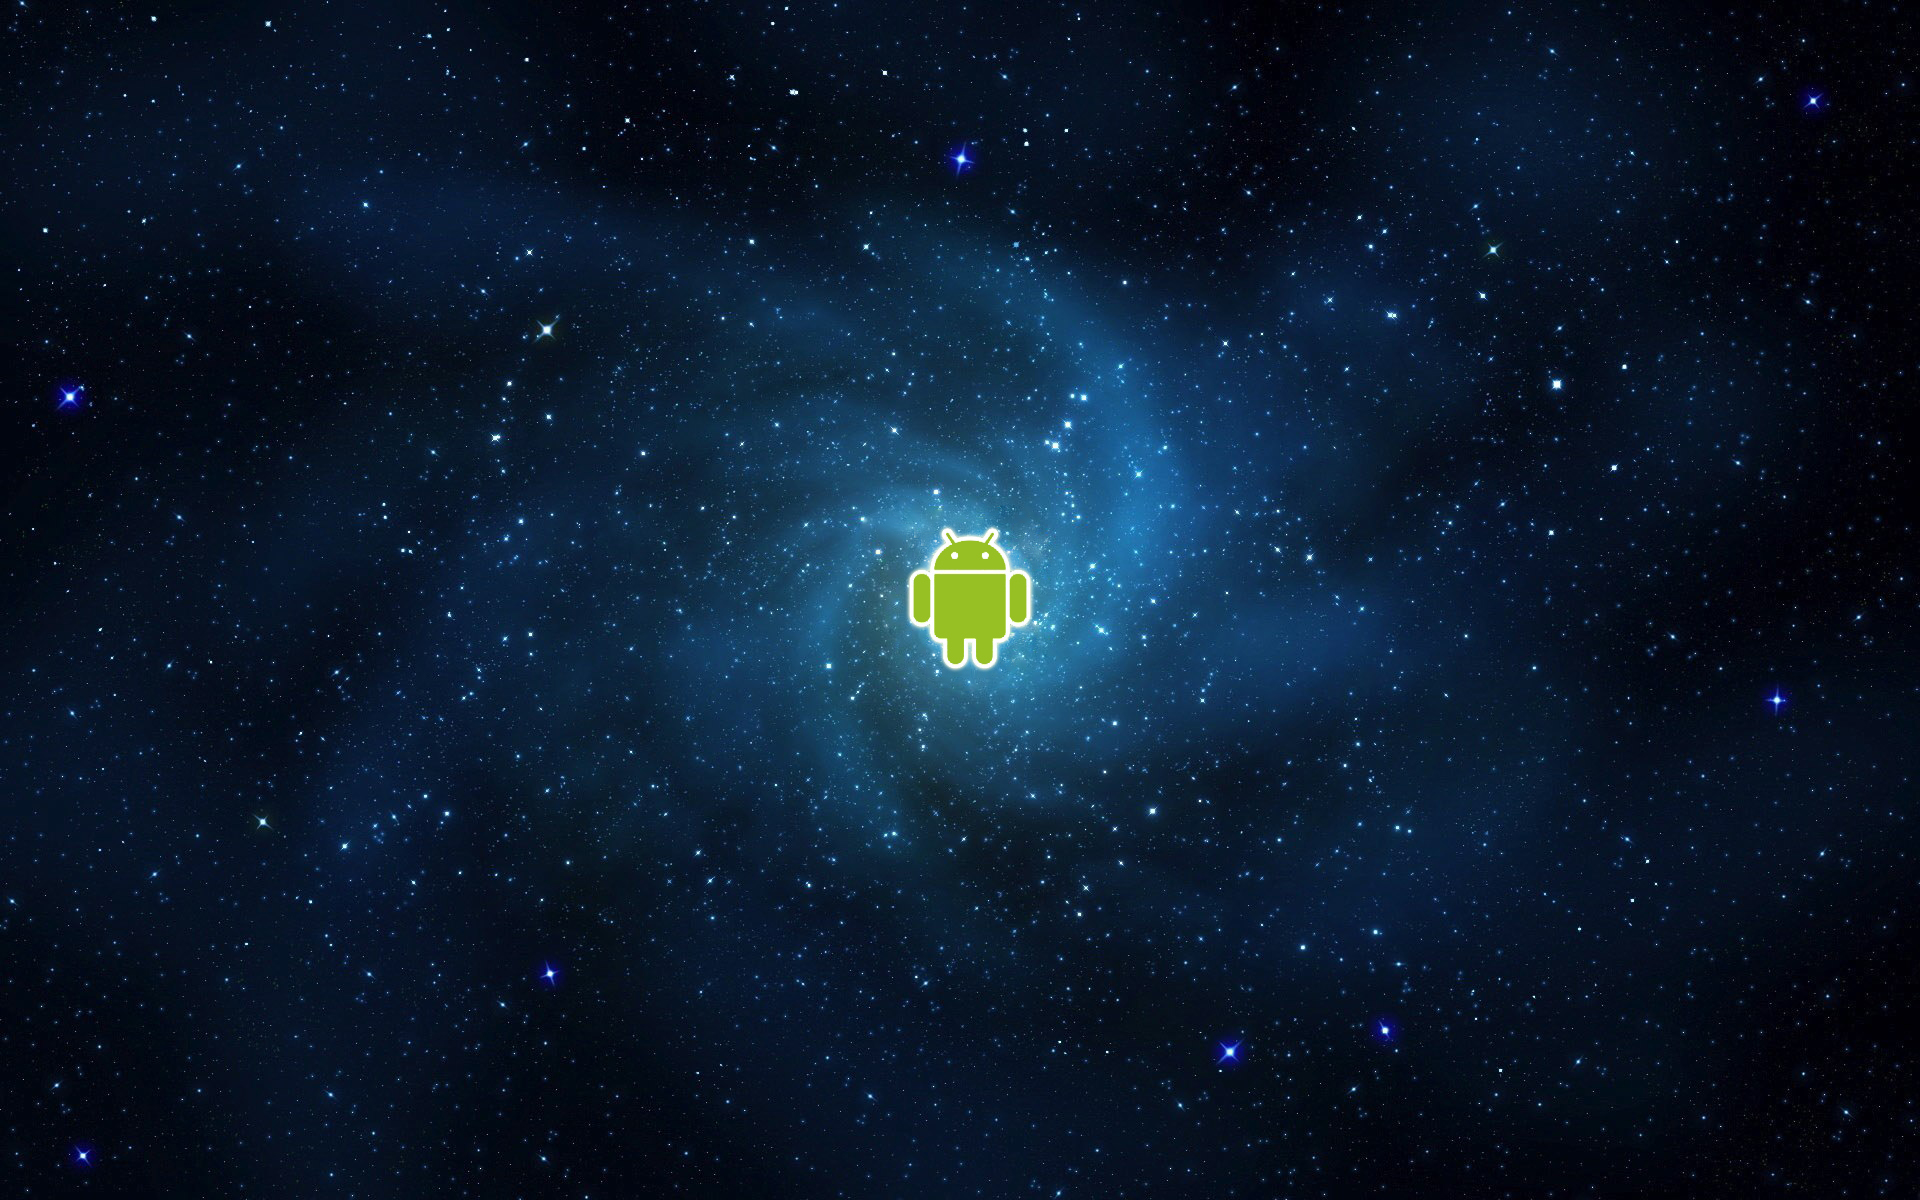 Android wallpaper - Top 40 Android Wallpapers